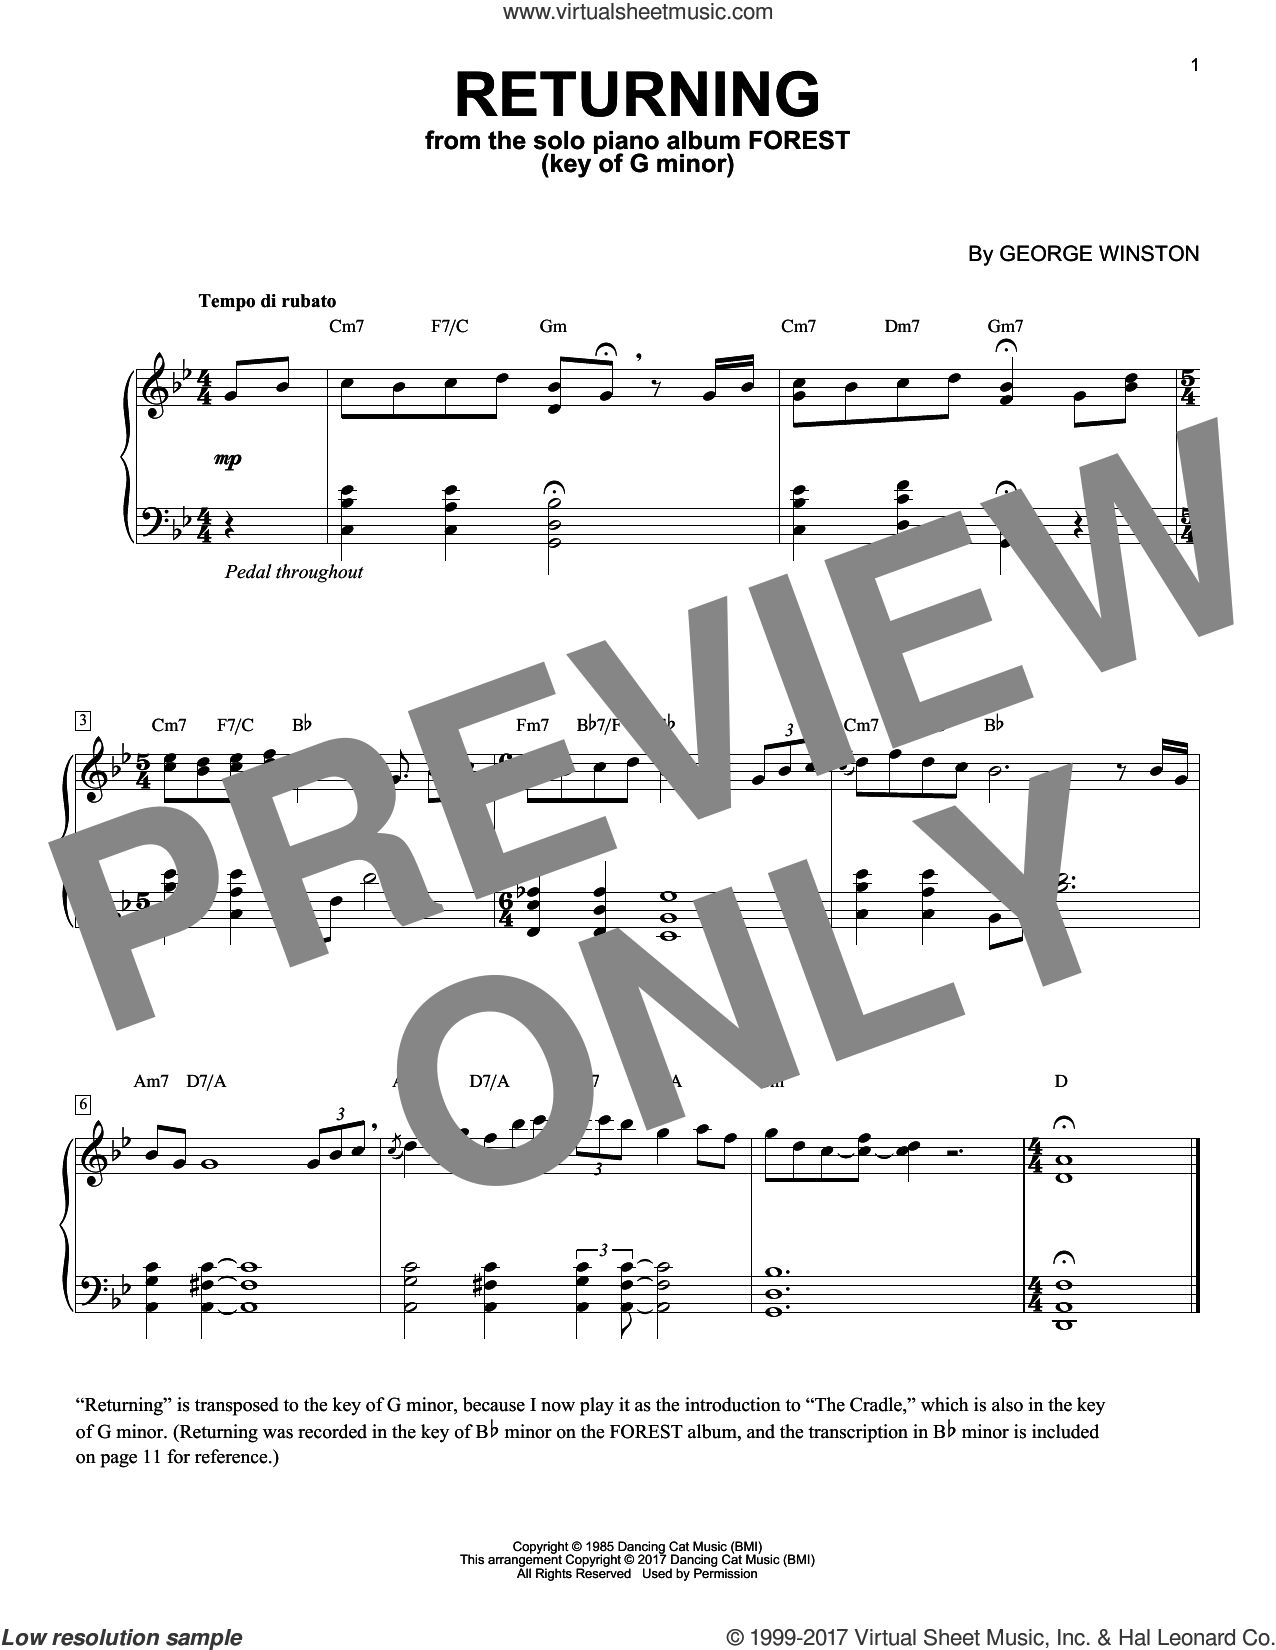 Returning In The Key Of G Minor sheet music for piano solo by George Winston, intermediate piano. Score Image Preview.